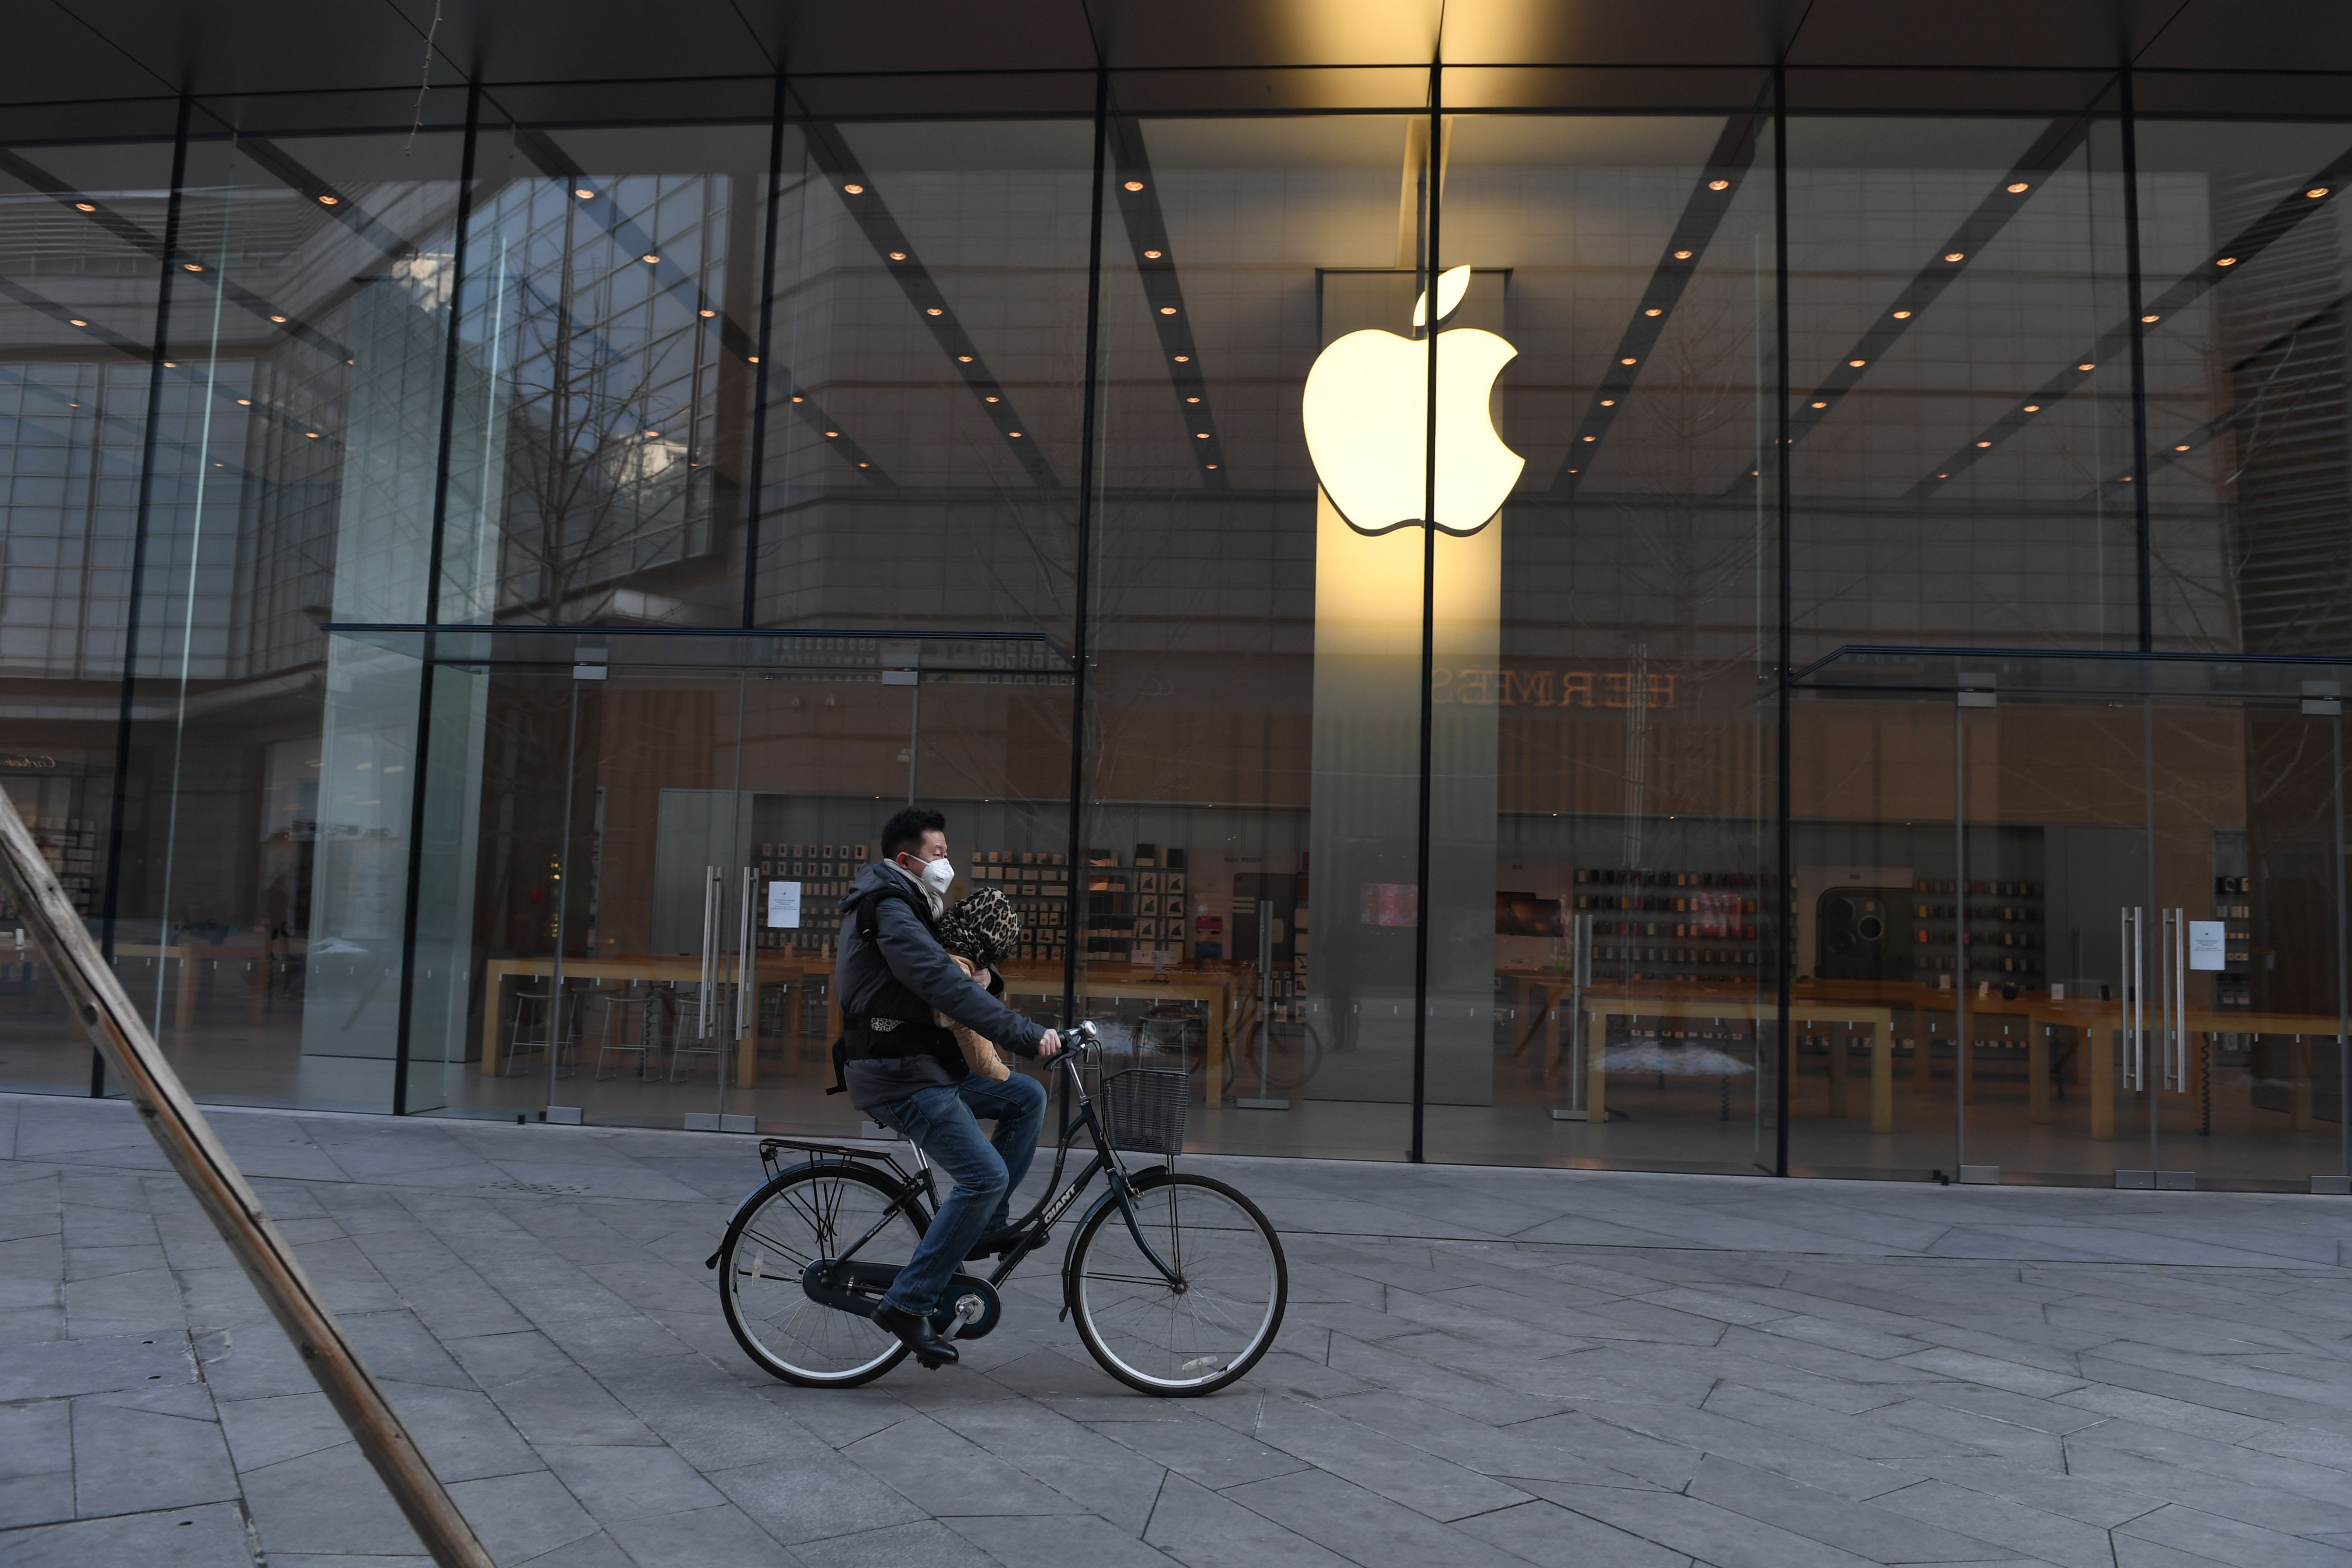 Apple shares slide after coronavirus guidance warning as its global suppliers are hammered